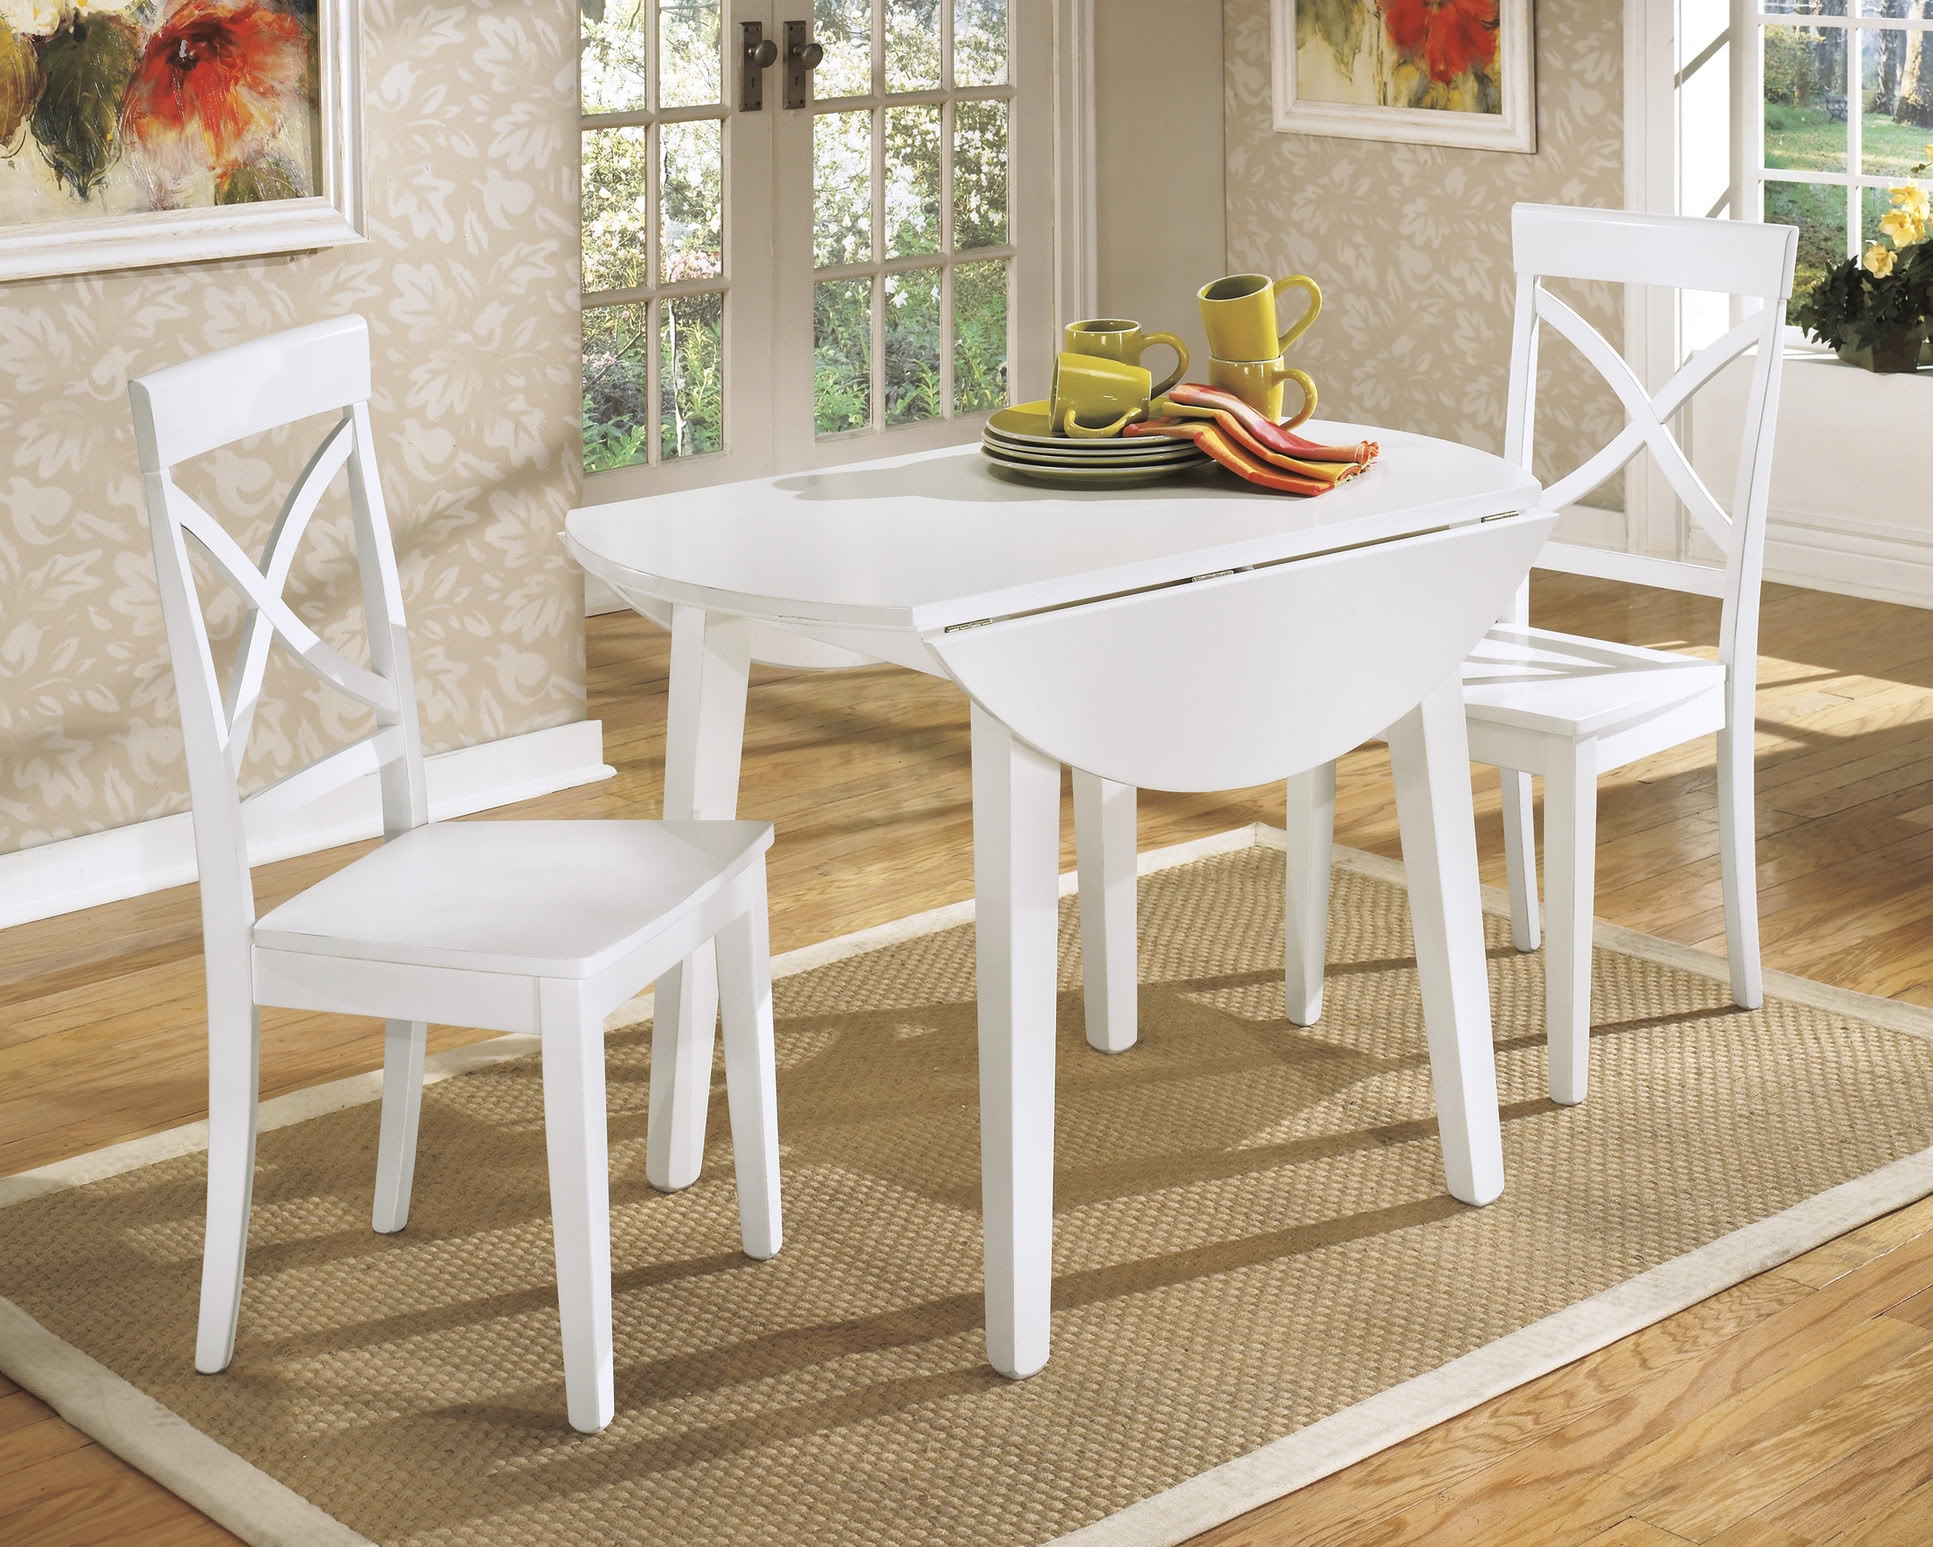 Viewtopic moreover P 004W005854662001P also White Kitchen Table together with Scroll Templates likewise How To Build Wall Folding Chair. on best folding chairs